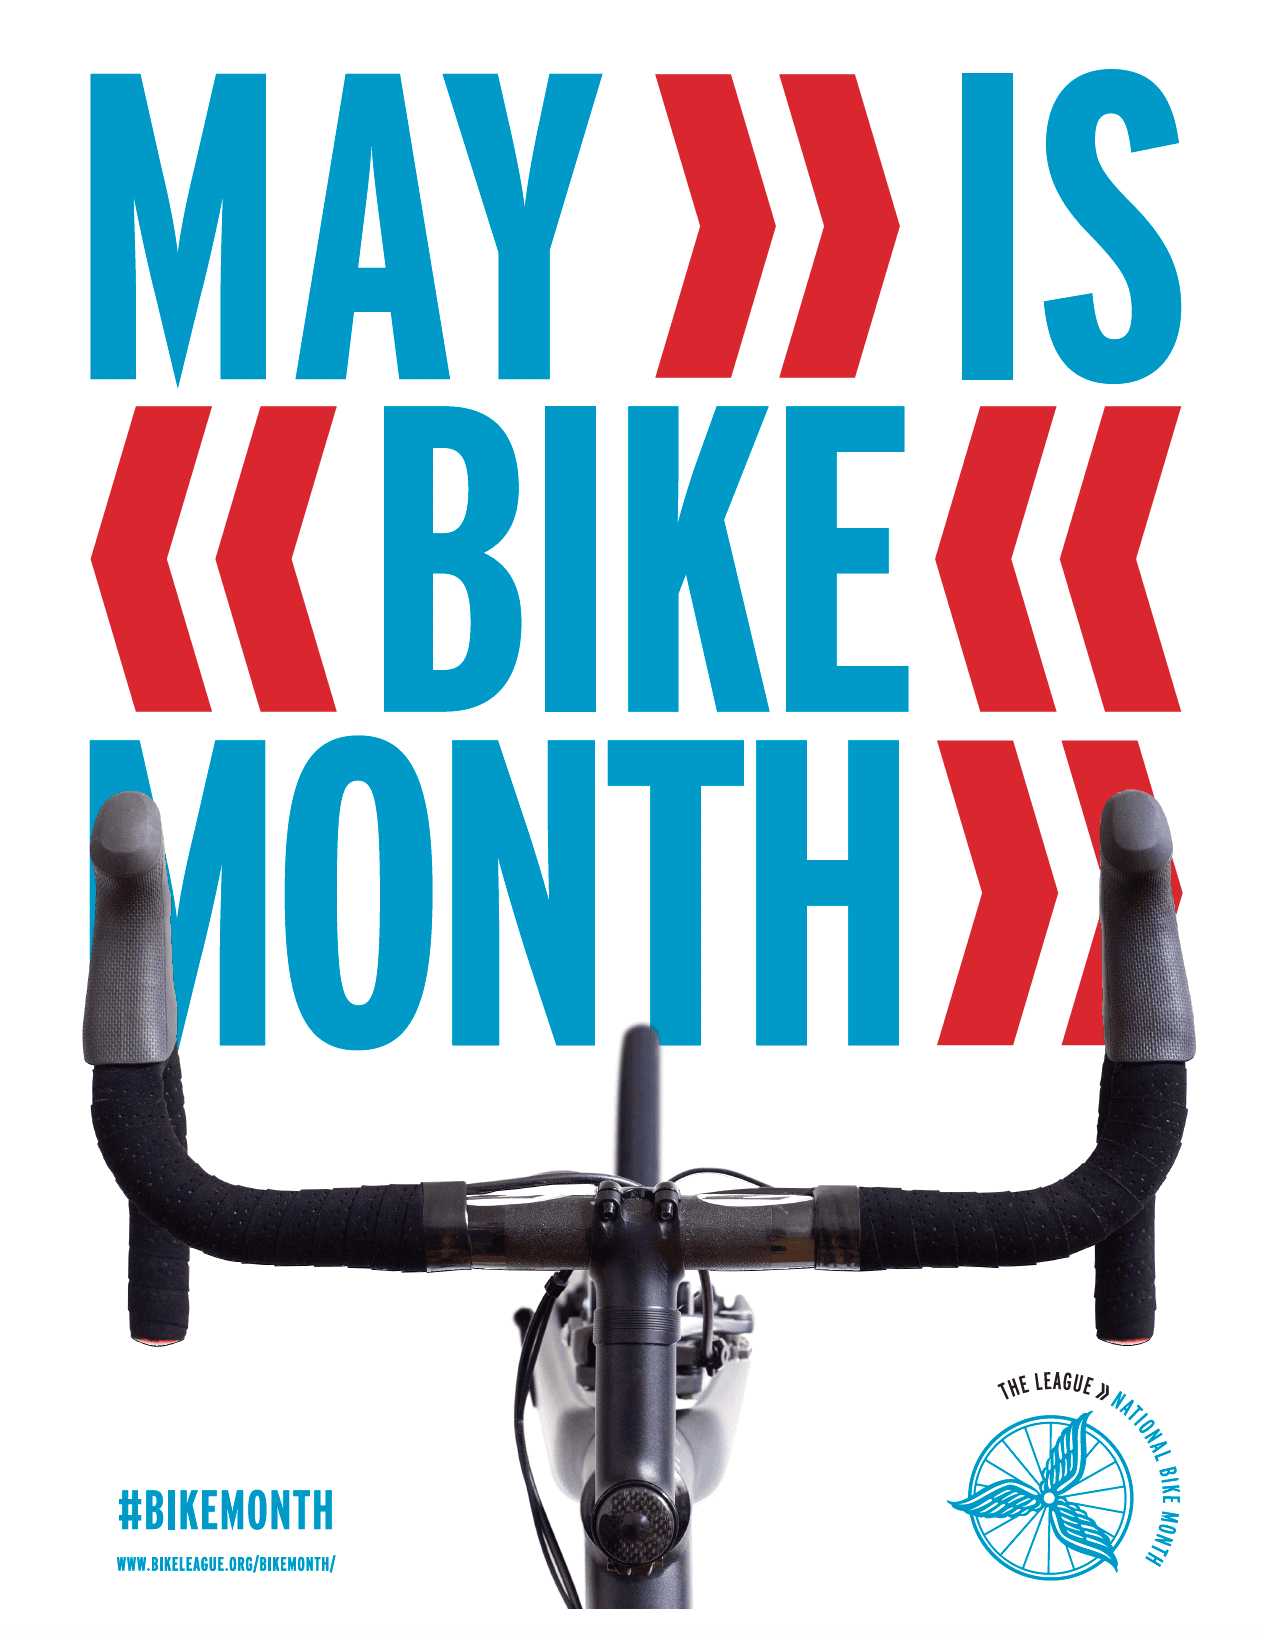 bikemonthpretty